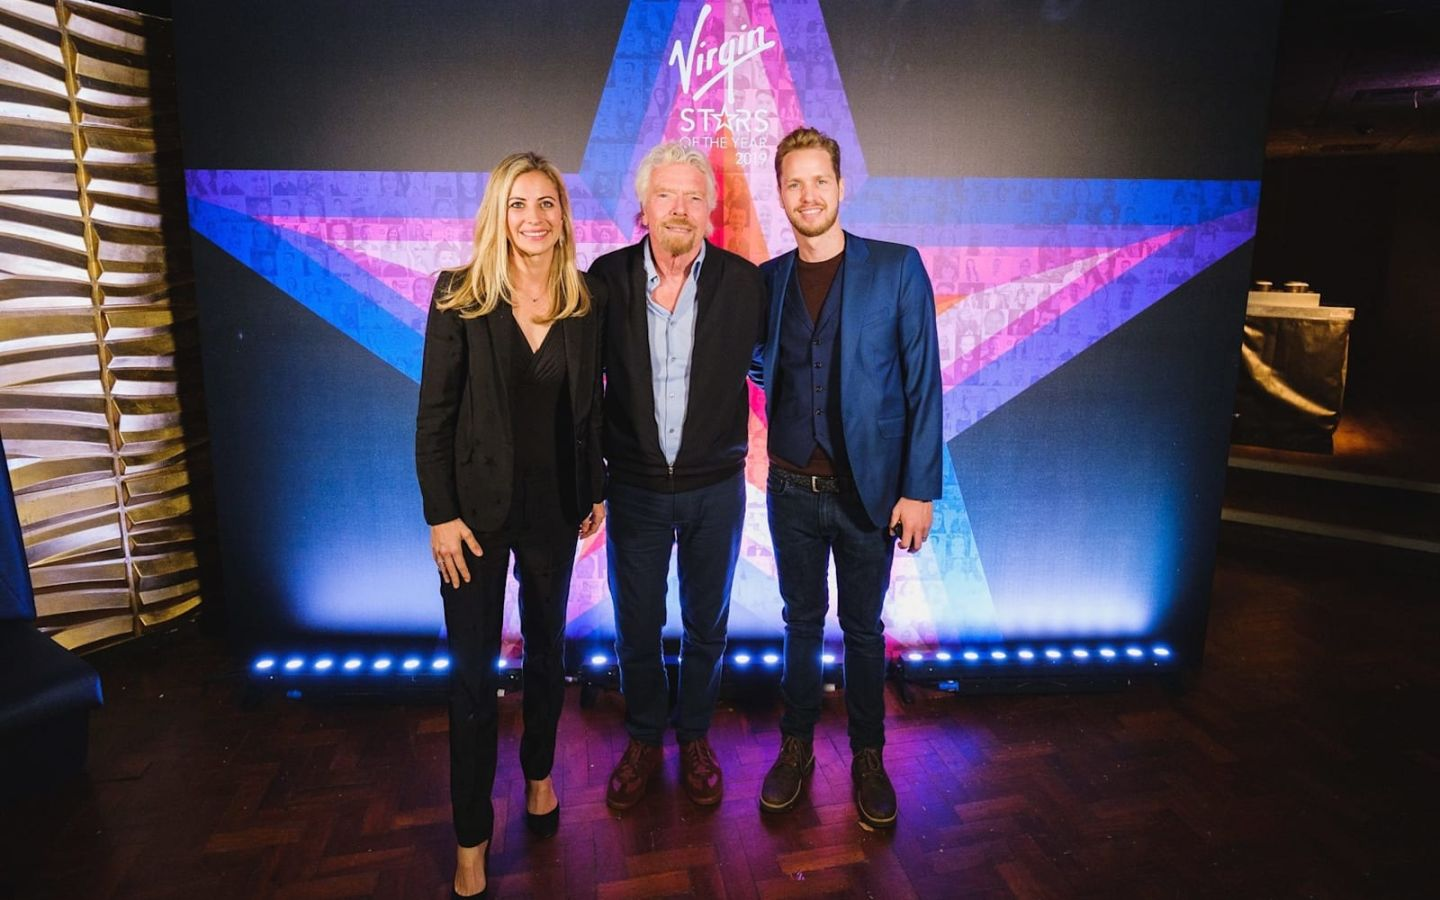 Richard with Holly and Sam at Virgin Stars event